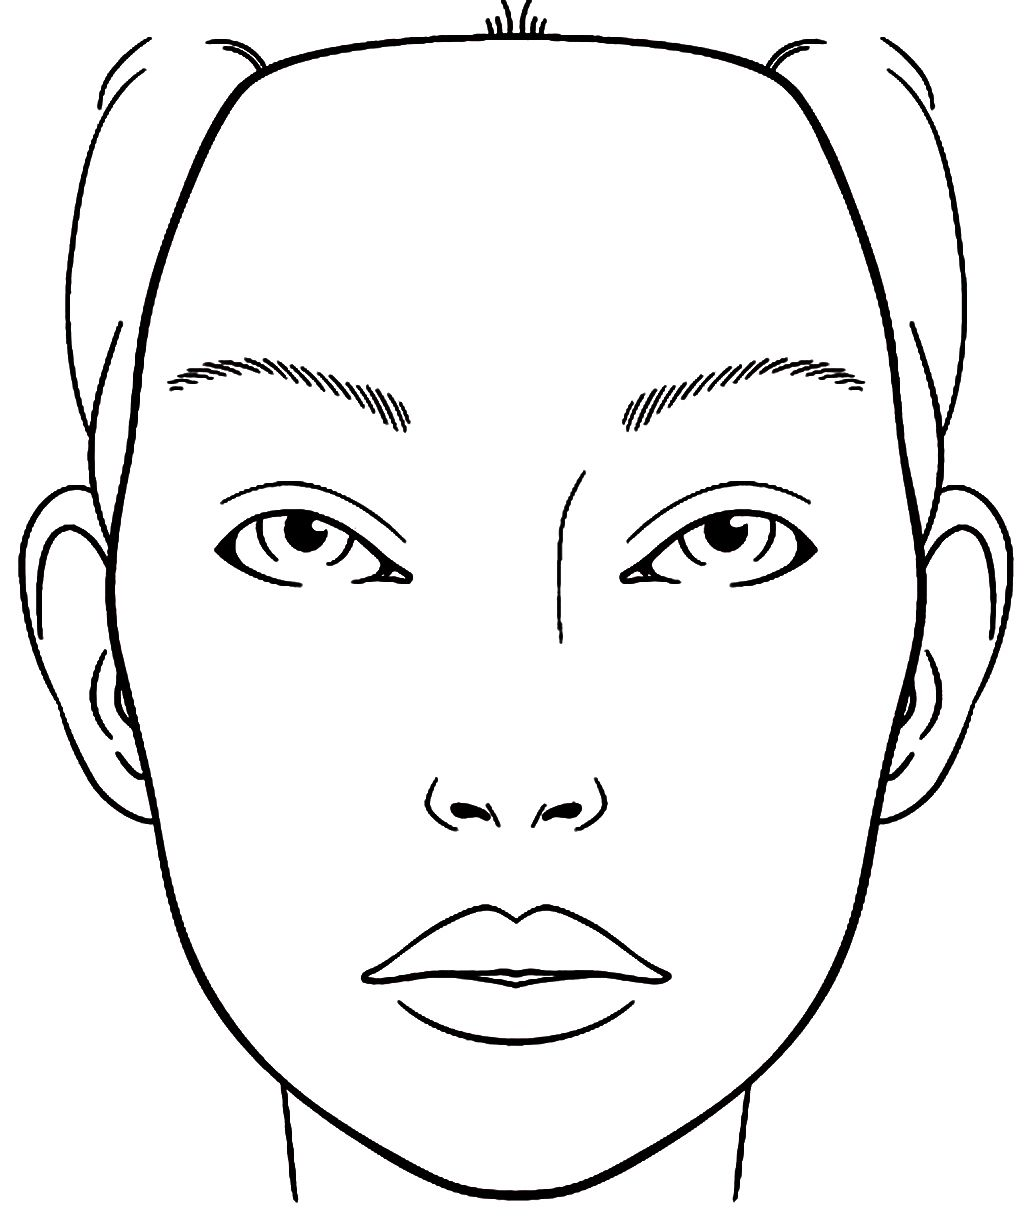 Blank face chart sketch coloring page art lessons pinterest